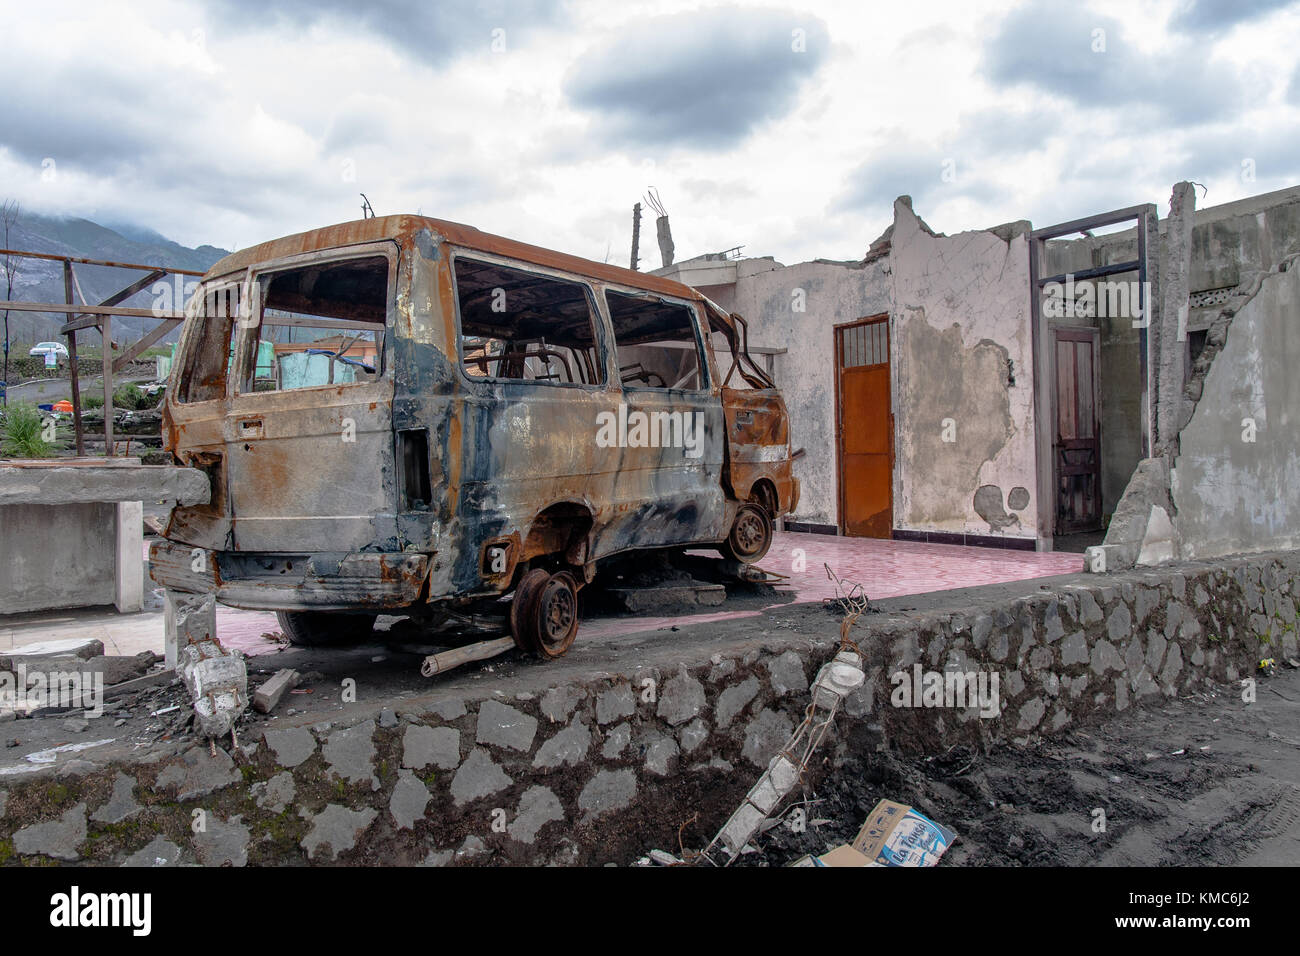 Abandoned house after the Merapi Volcano eruption, Central Java - Stock Image